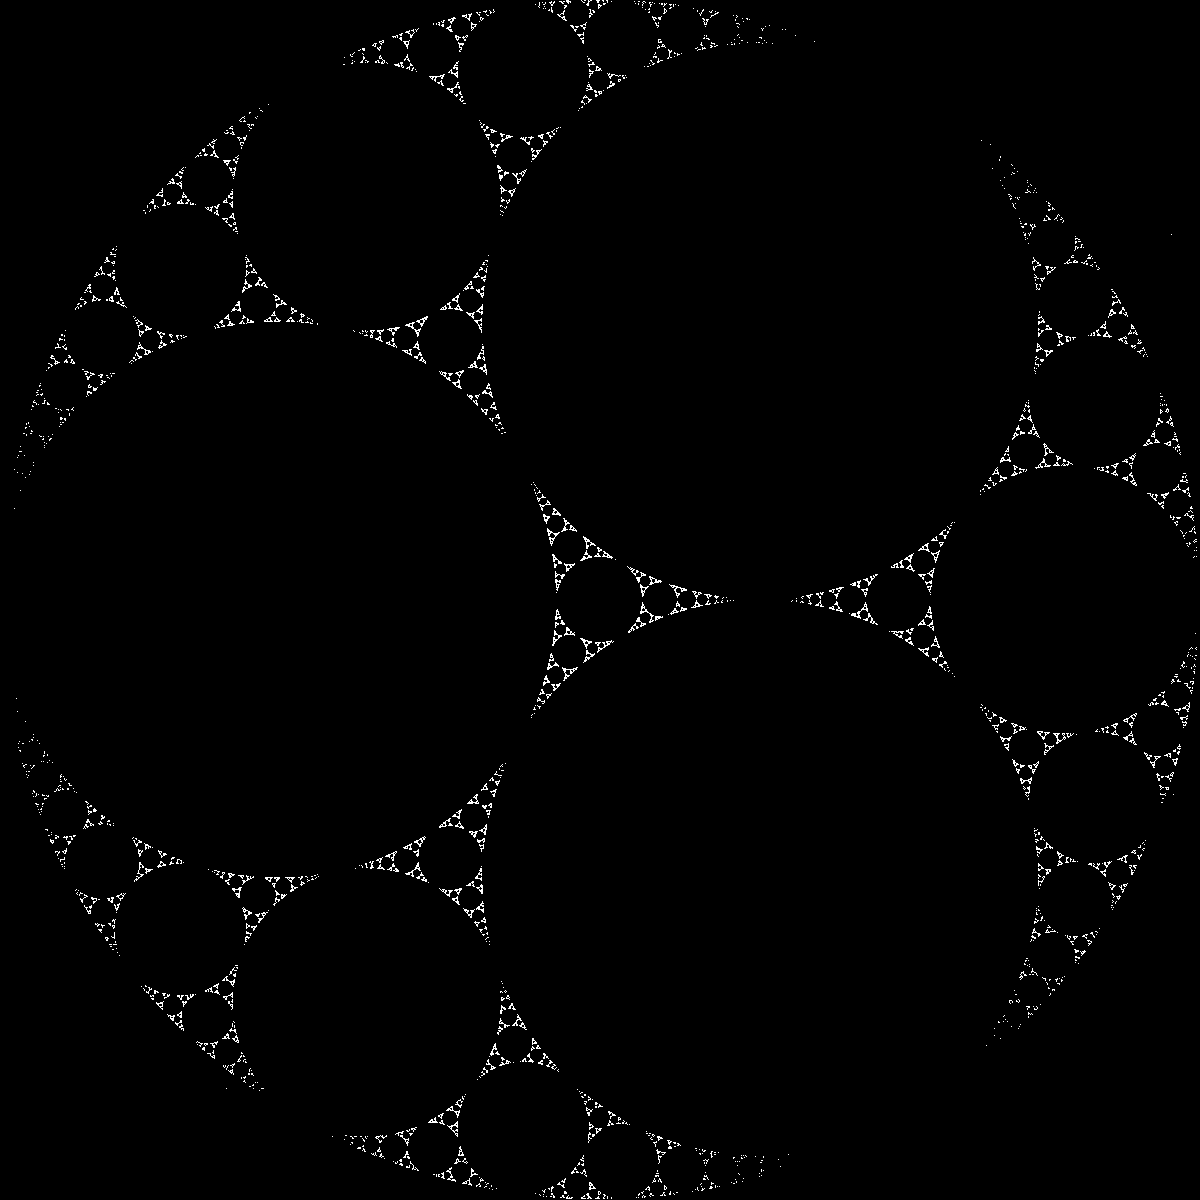 Fractal Python Programs - Pretty Math Pictures